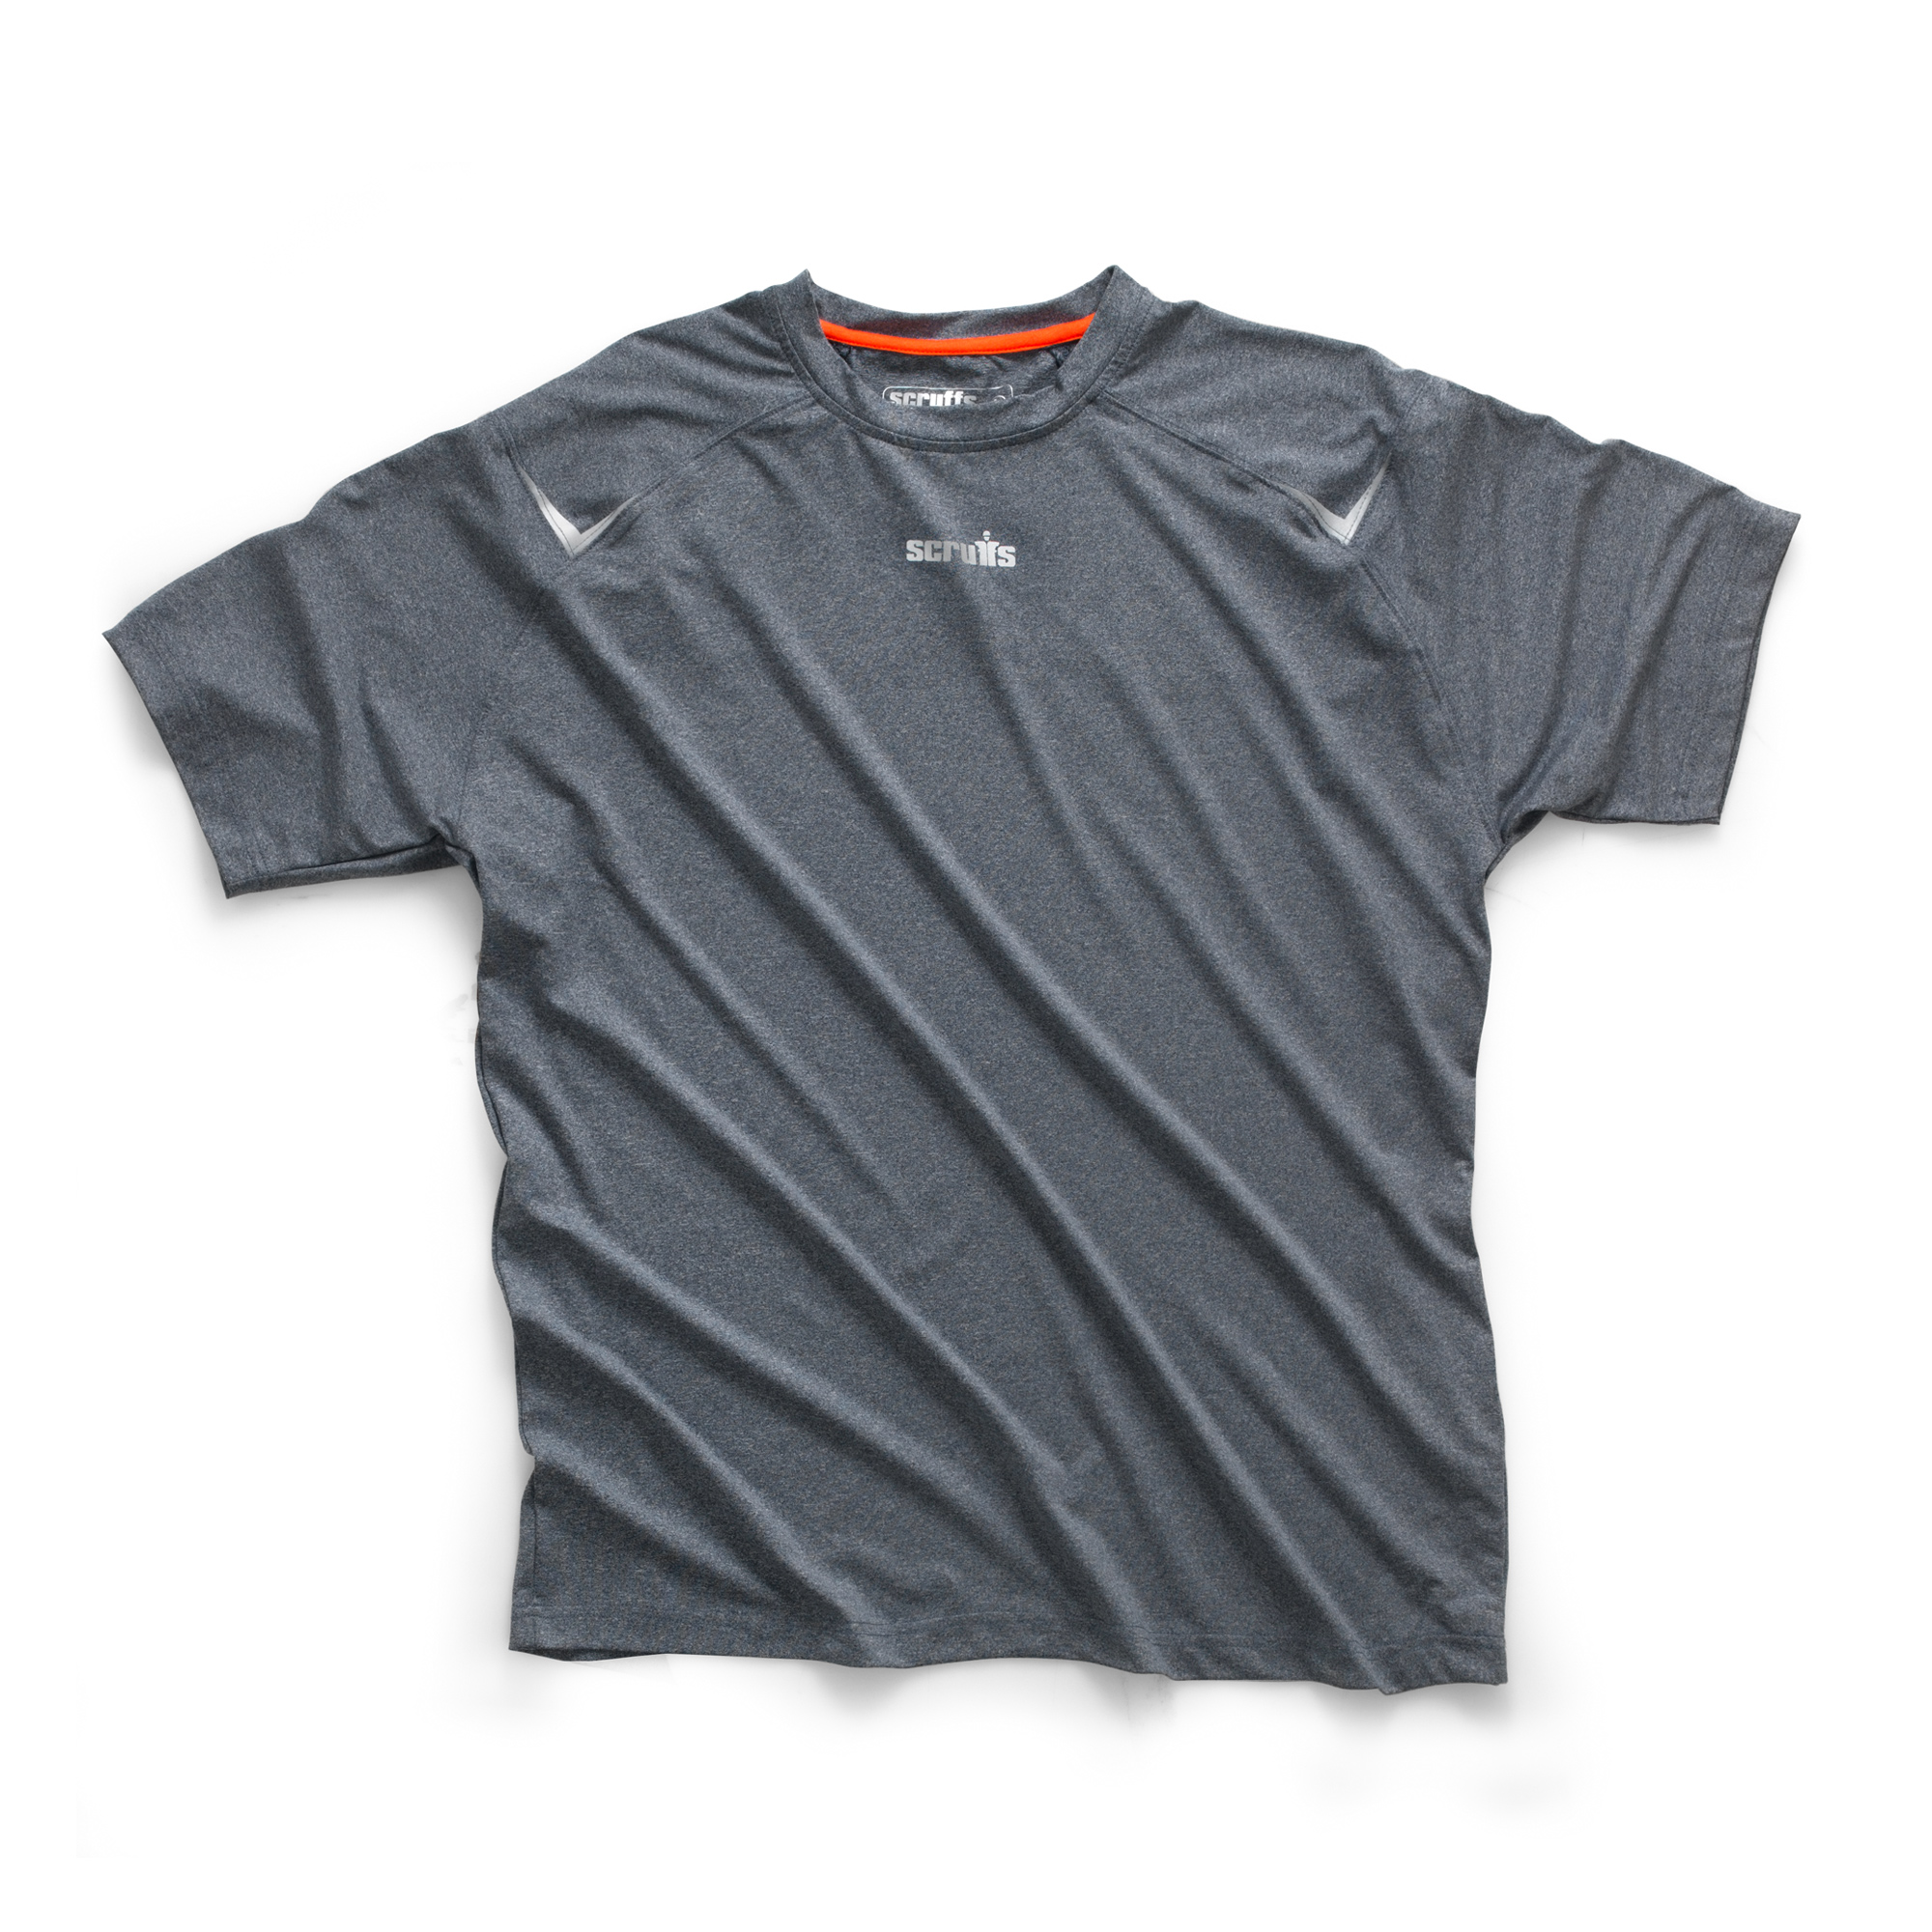 Scruffs Active Poly T Shirt